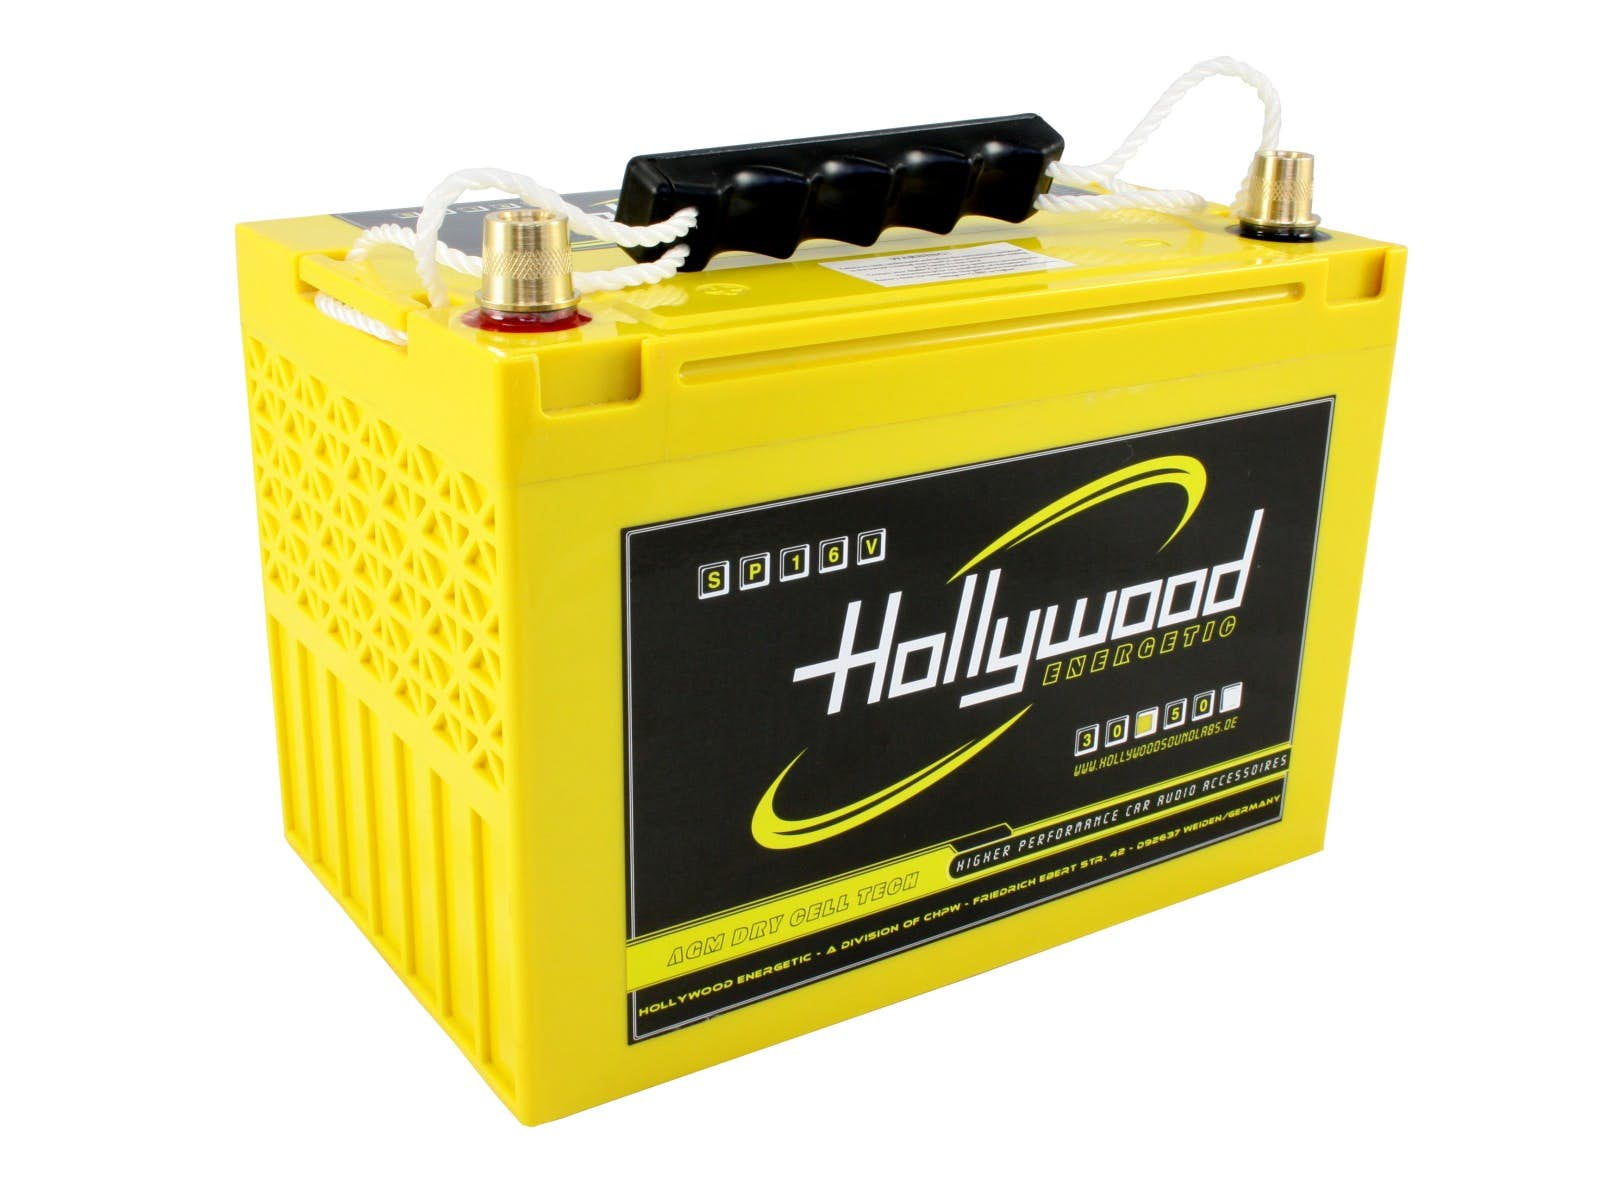 Akumulator Hollywood ENERGETIC SP16V 30 (30 Ah)